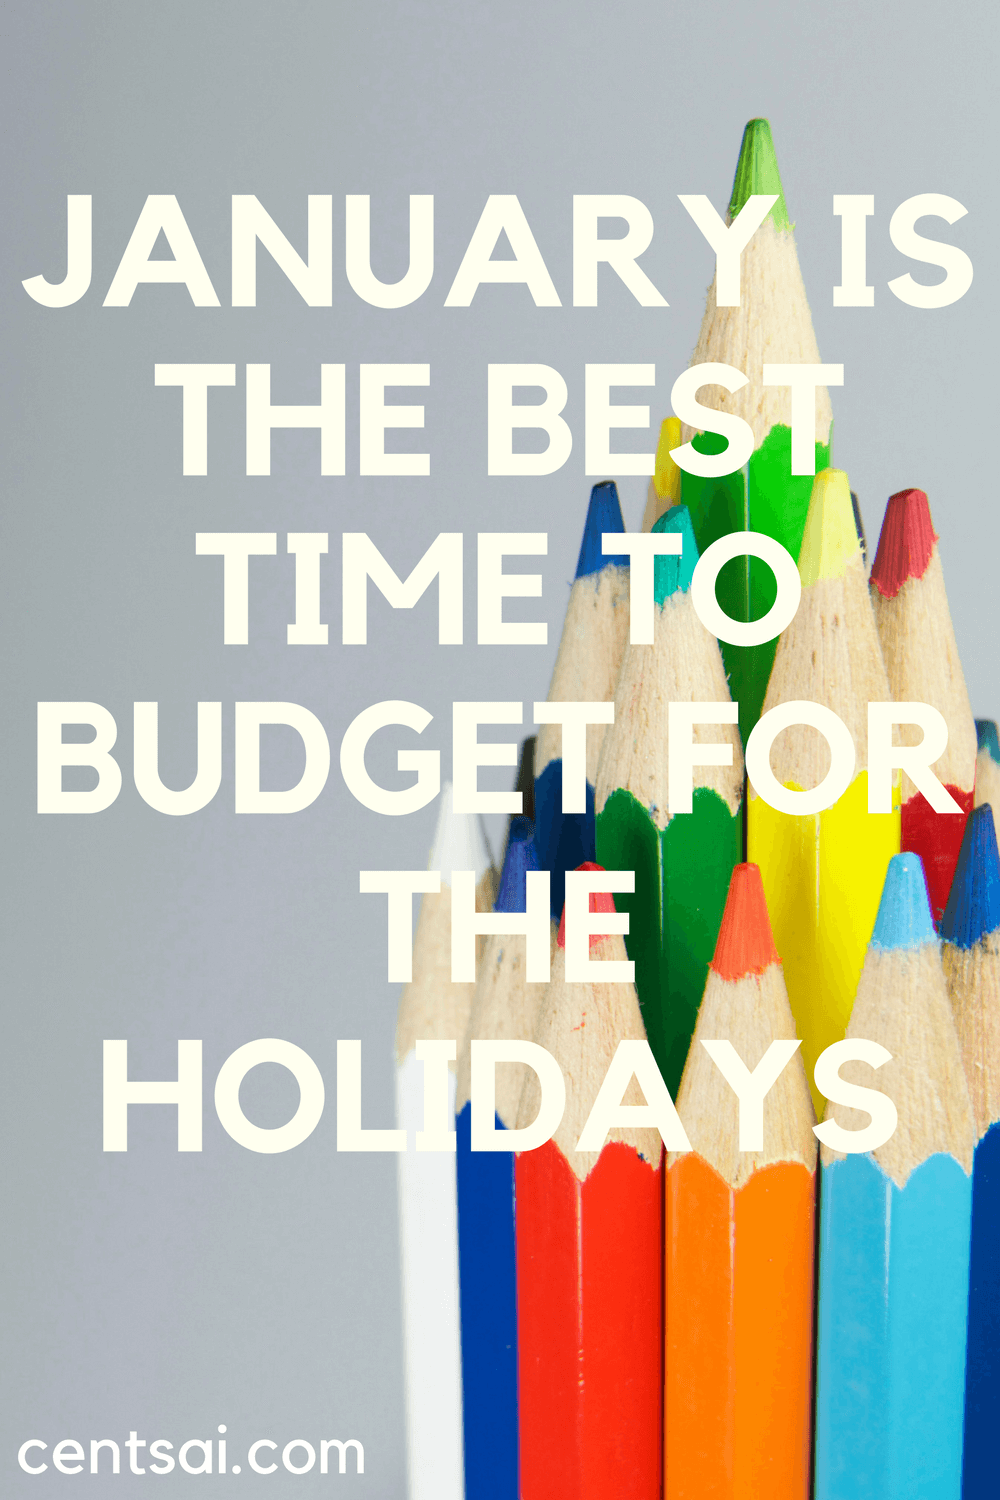 January is a good month to begin saving so that you can be a worry-free Santa when the holidays roll around again!